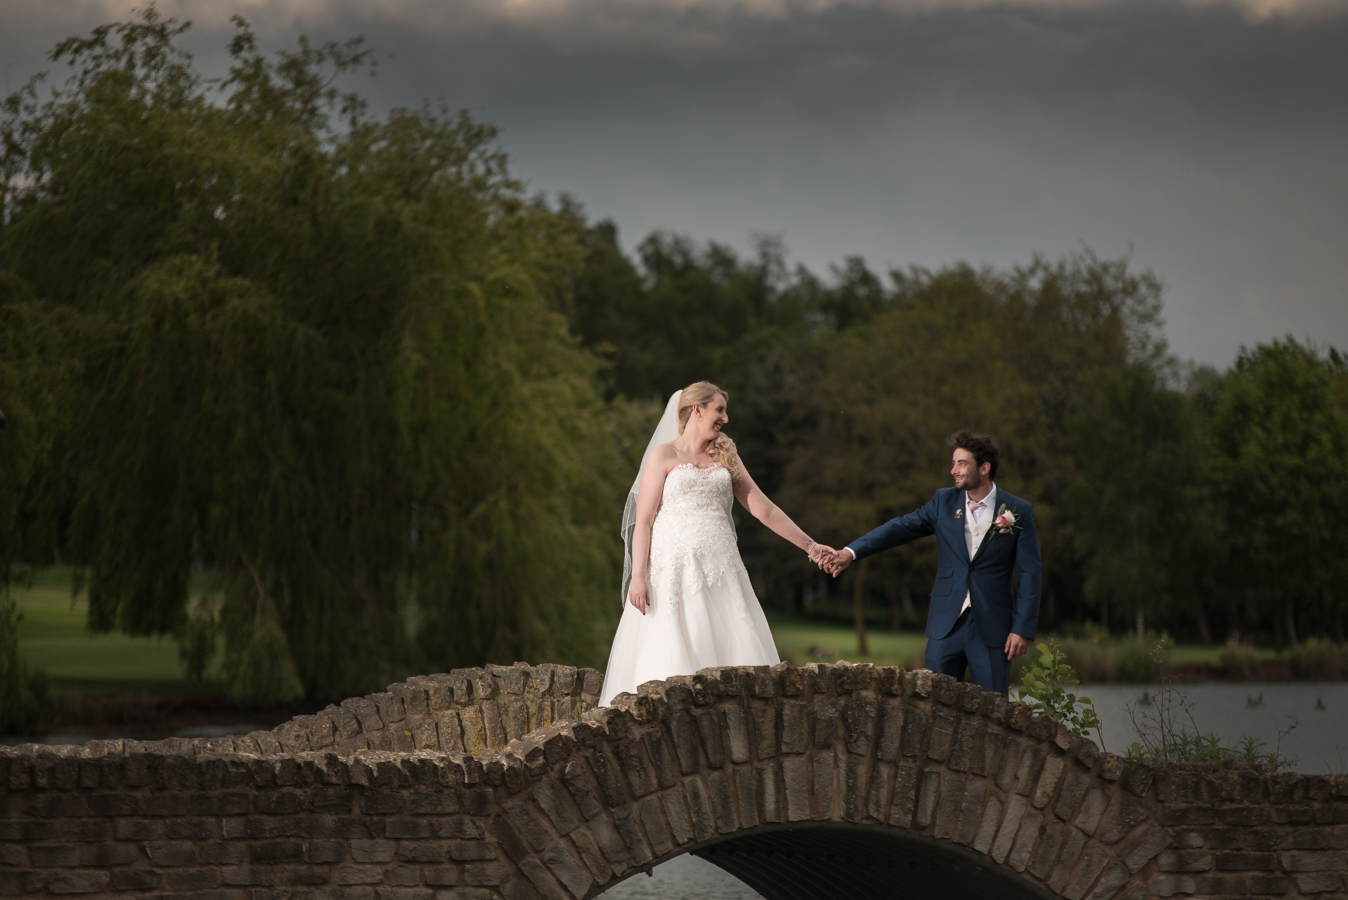 mk wedding photography - creative and natural wedding photography in coventry west midlands